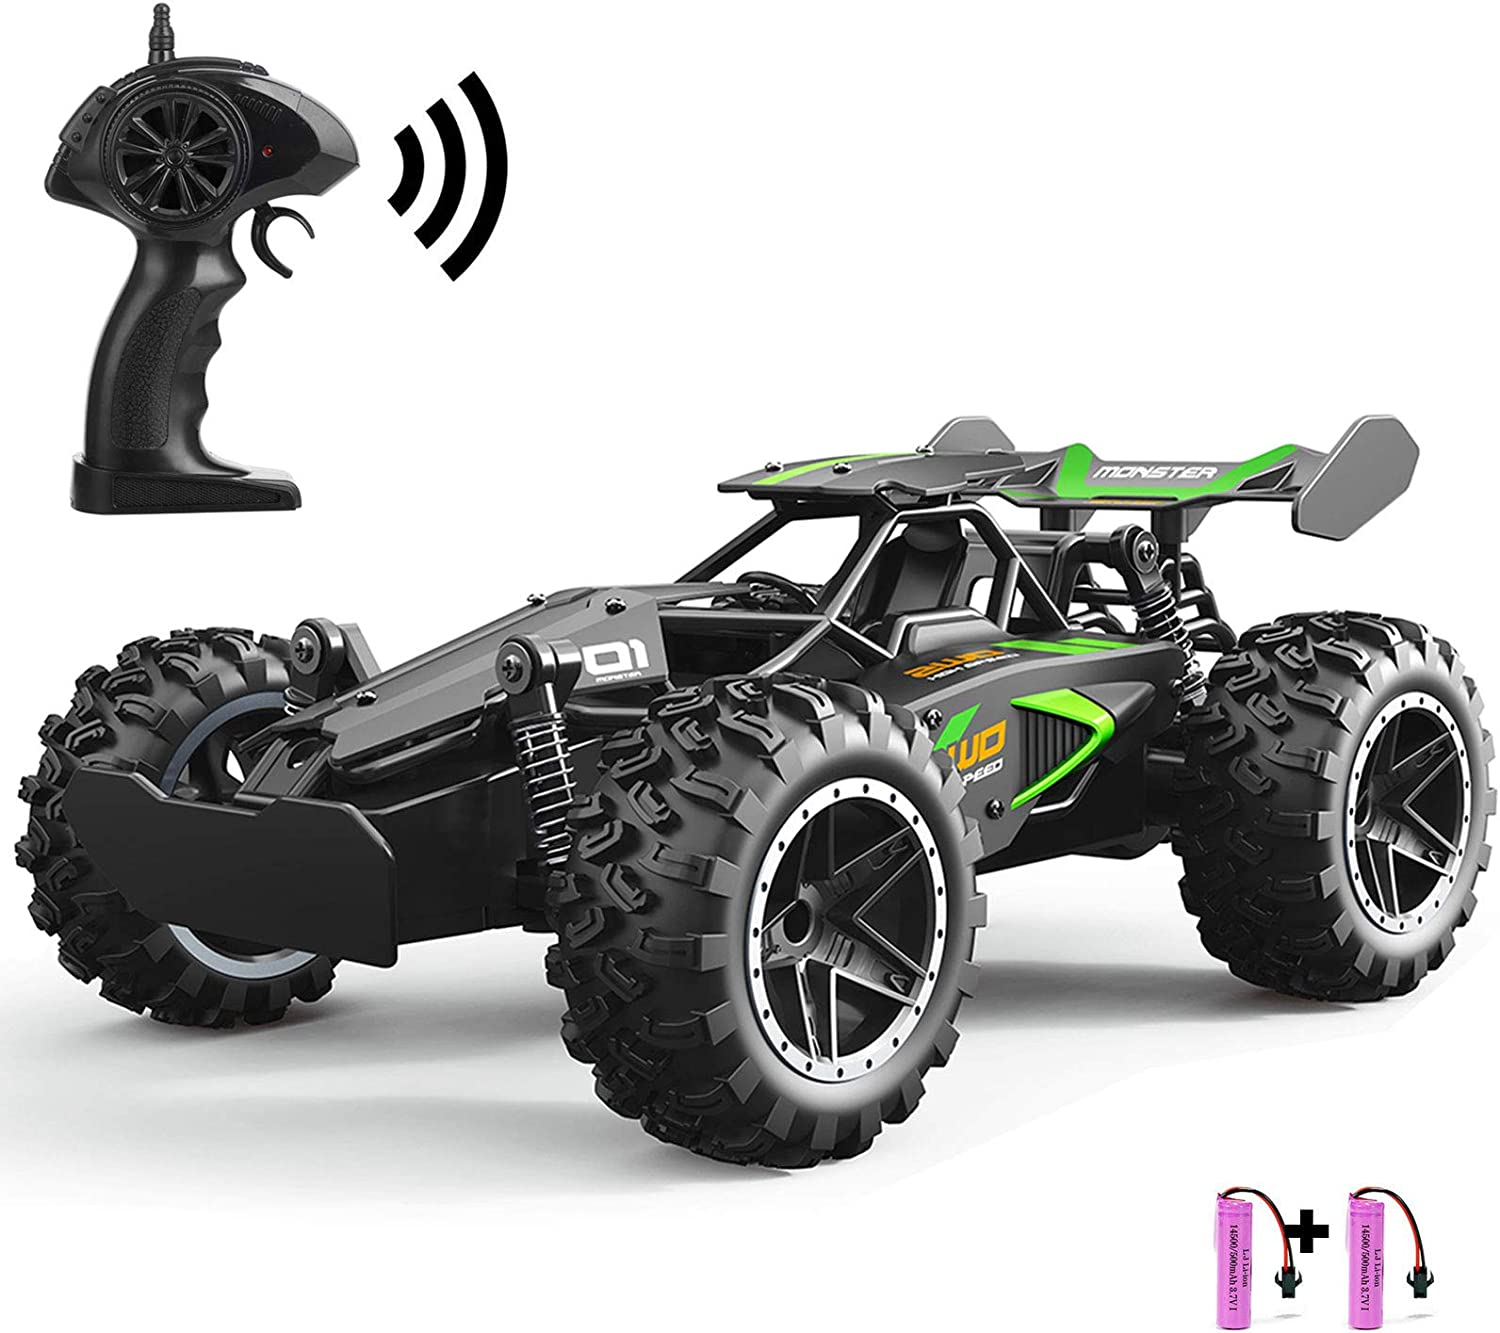 Amazon Com Blexy Rc Cars Water Resistant High Speed Remote Control Car 2 4ghz 2wd Rc Truck 1 18 Remote Control Racing Toy Vehicle Fast Hobby Car For Kids 3063 Black Toys Games